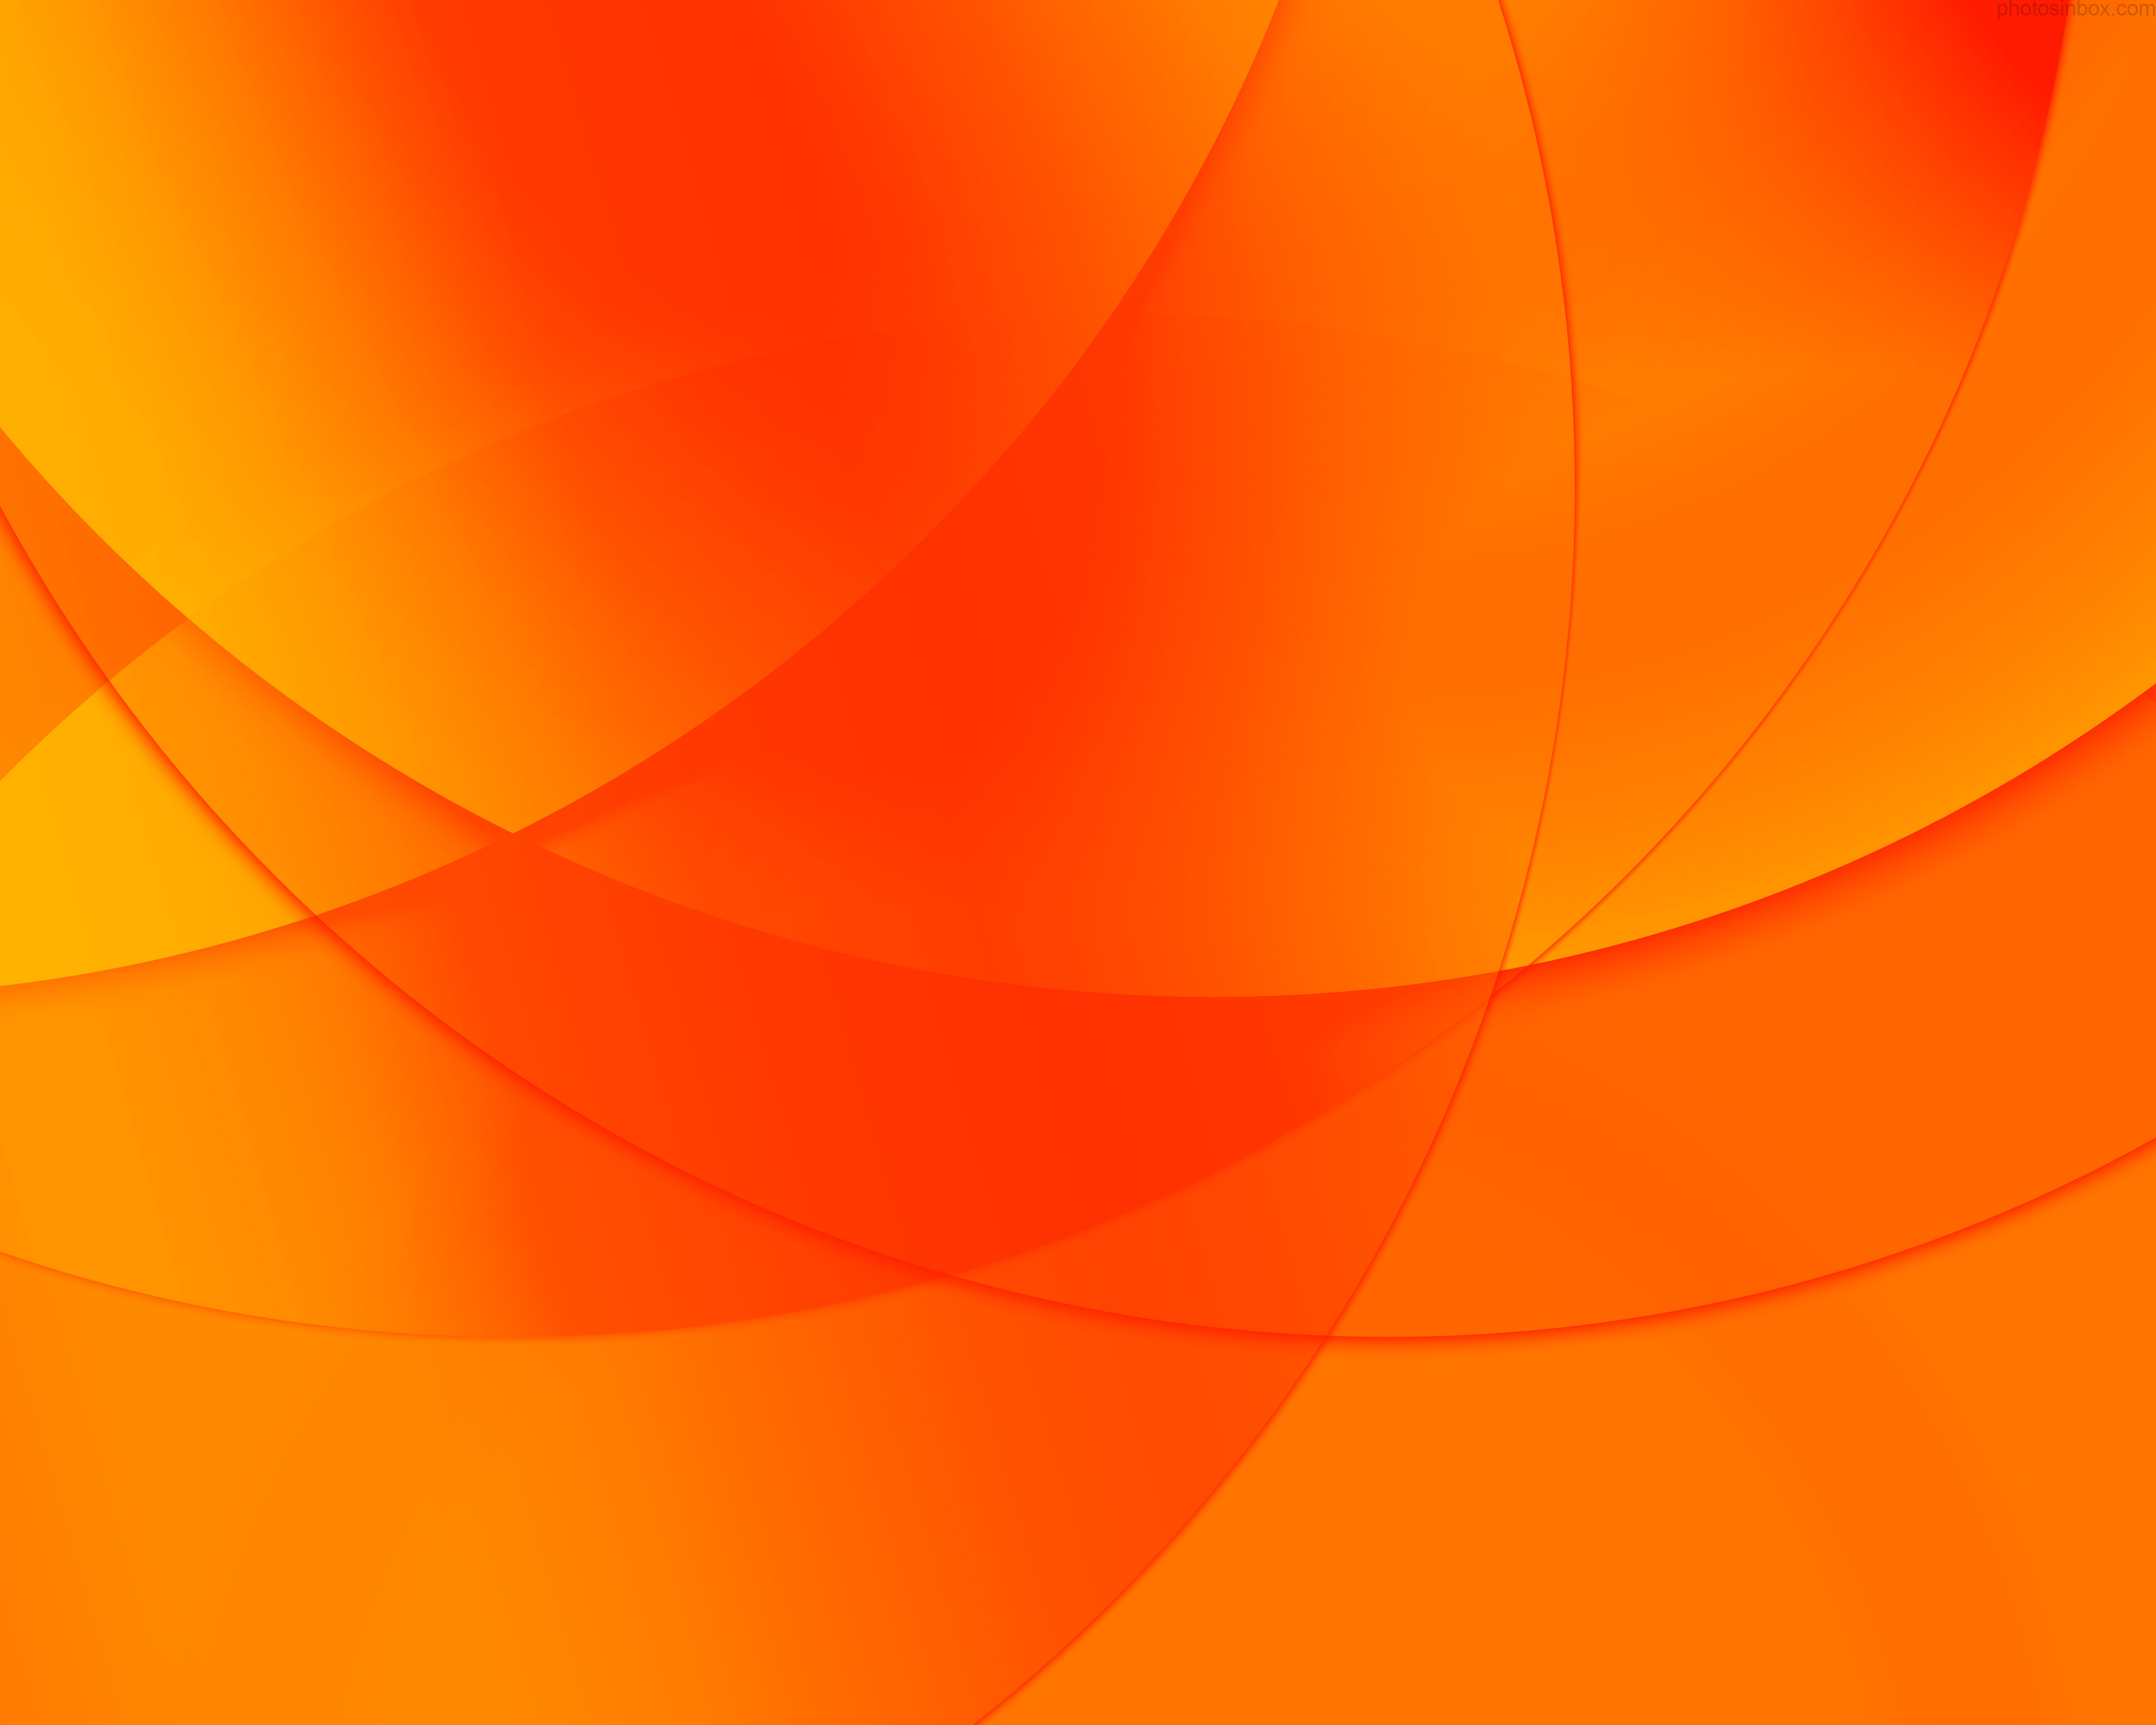 Cool Orange Background Designs Images & Pictures  Becuo #4823